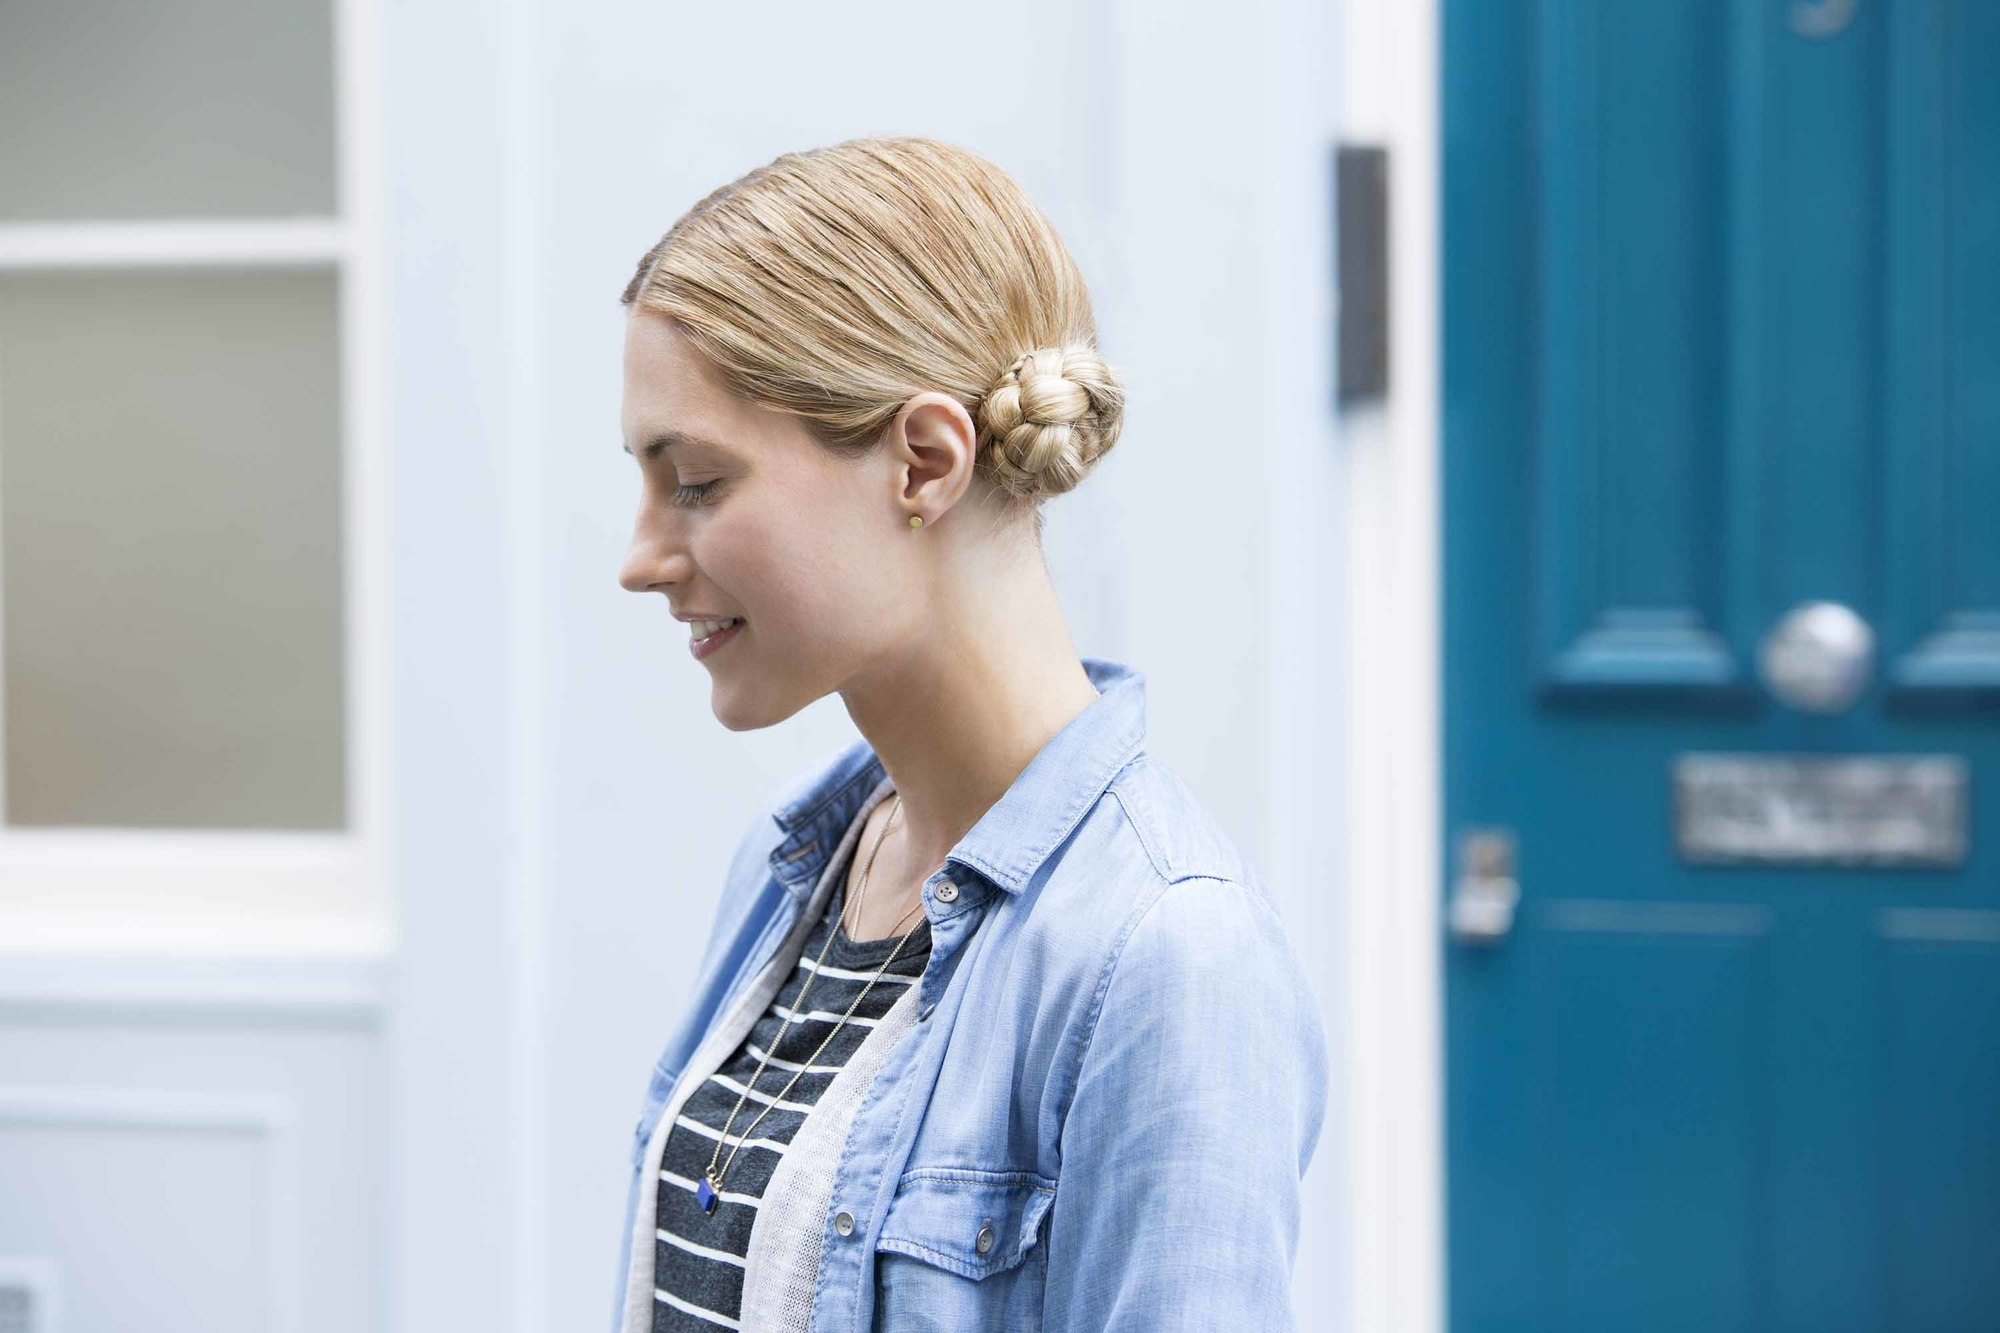 up hairstyles for long hair: streetstyle shot of model with braided low space buns